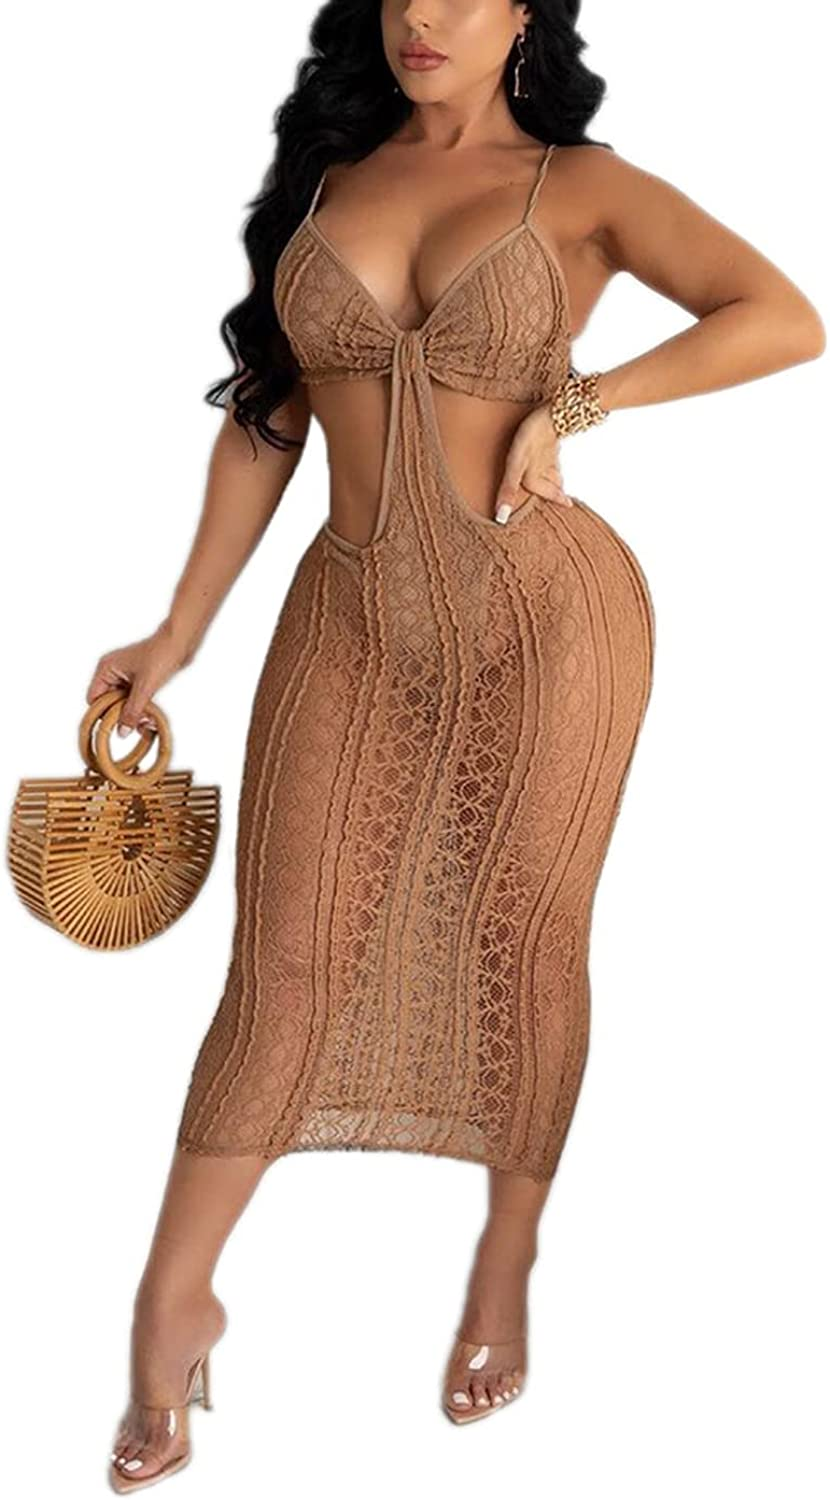 Women's Lace Spaghetti Strap Dress See Through Hollow Out Sleeveless Party Cocktail Midi Dress